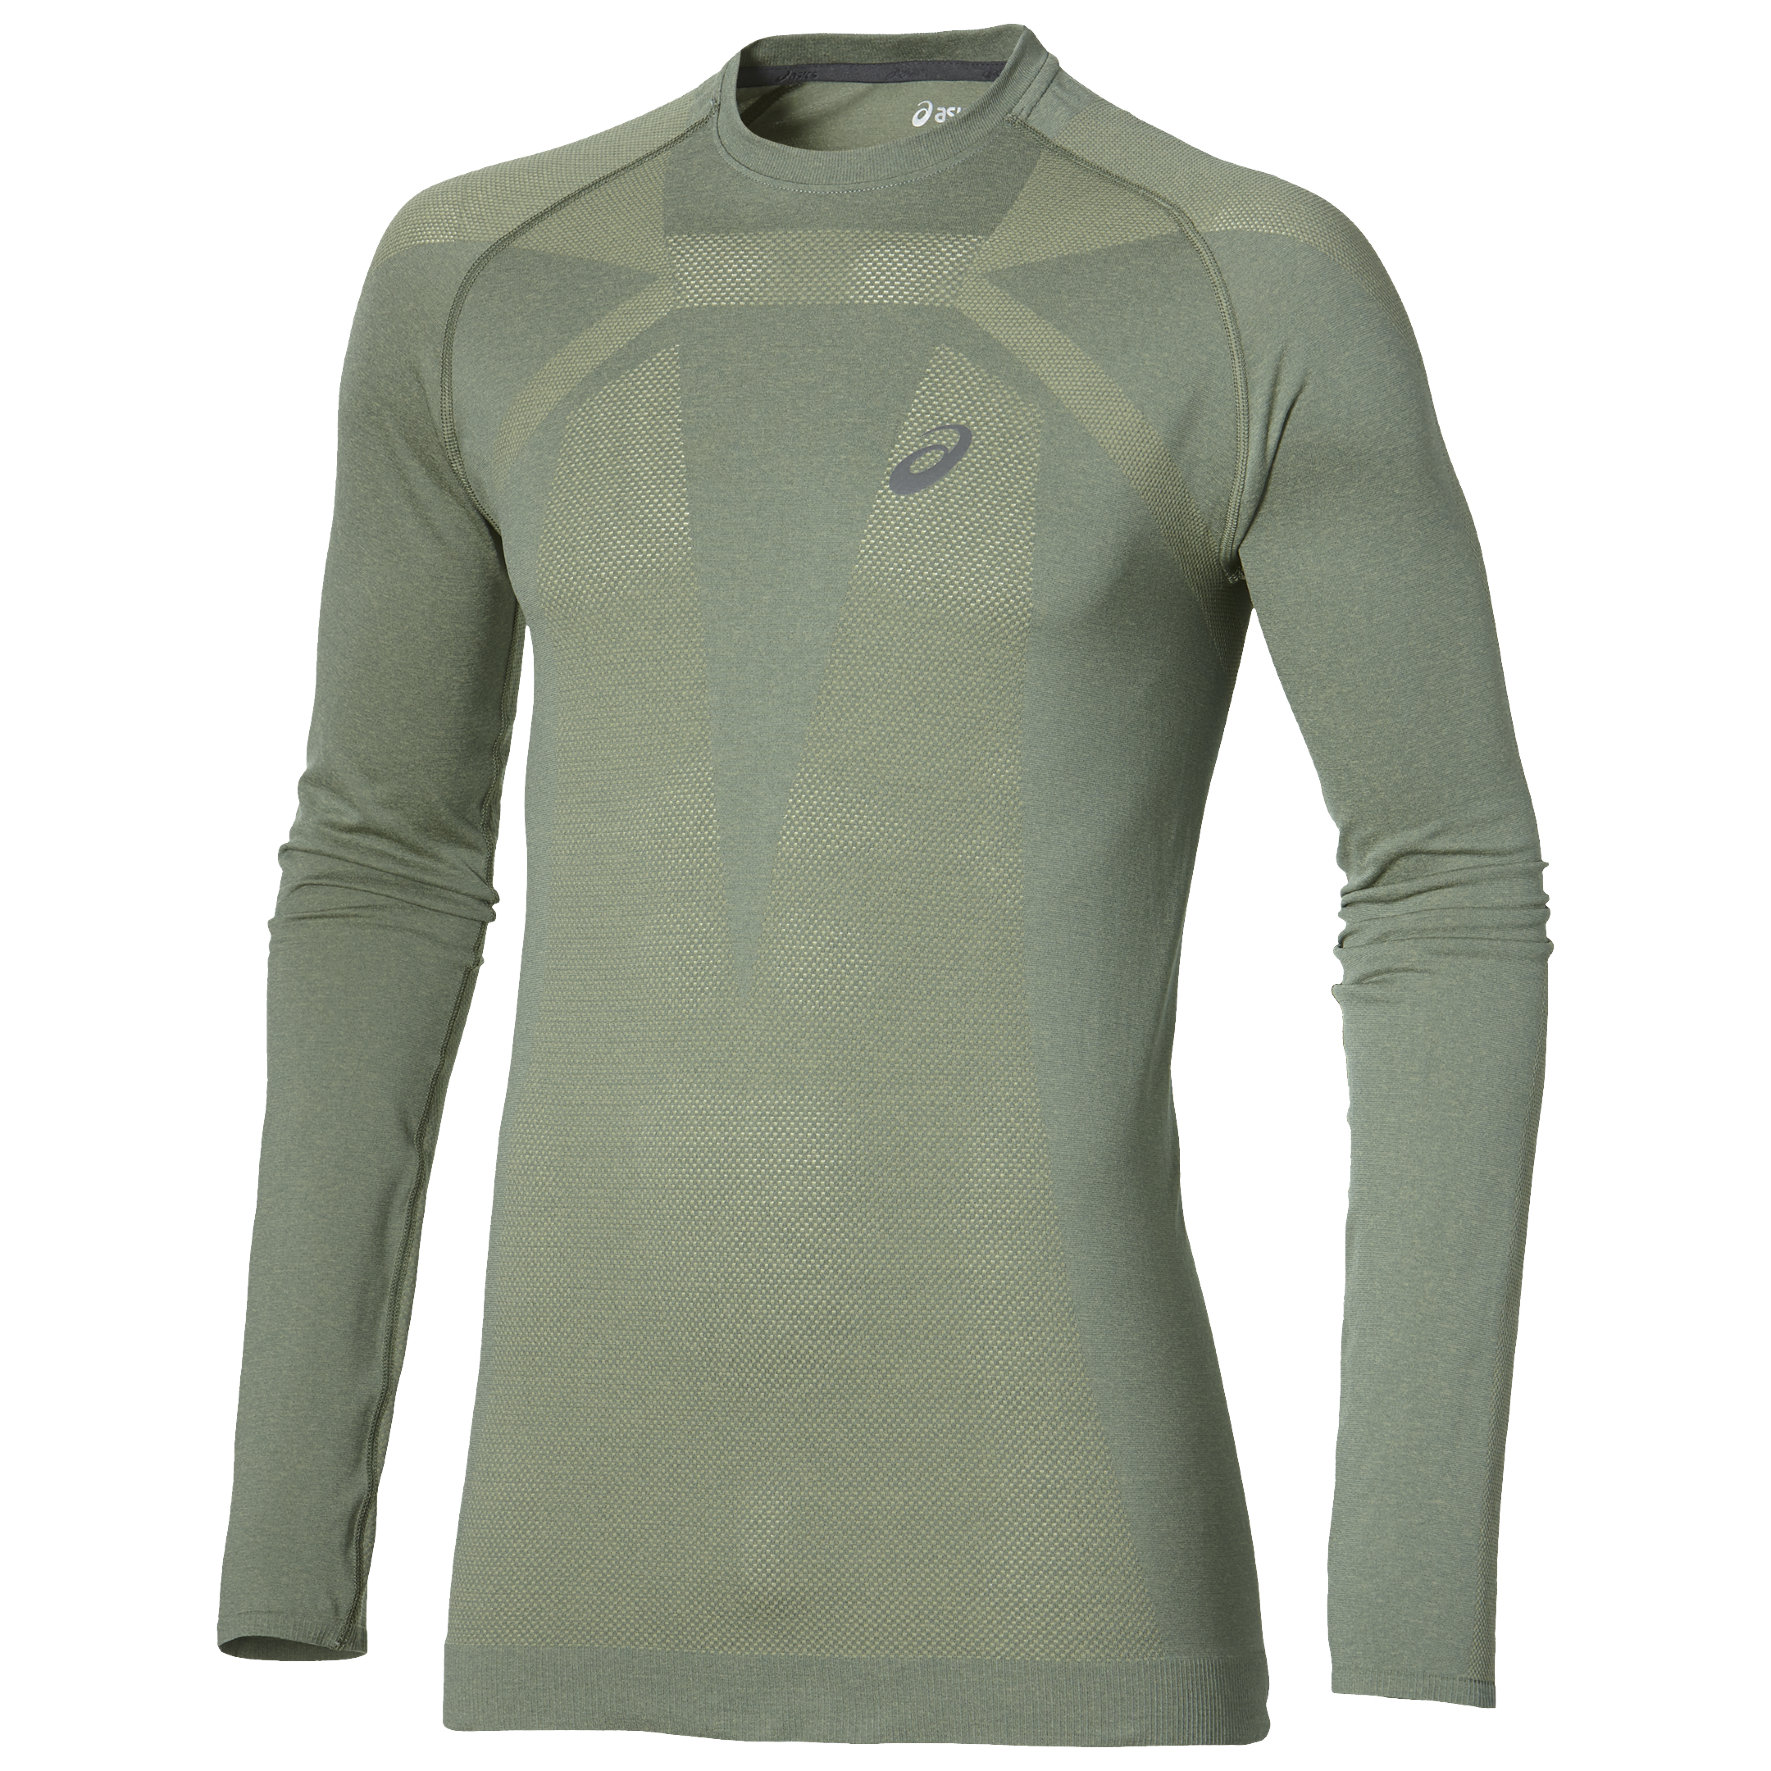 SEAMLESS LONG-SLEEVED TOP Men